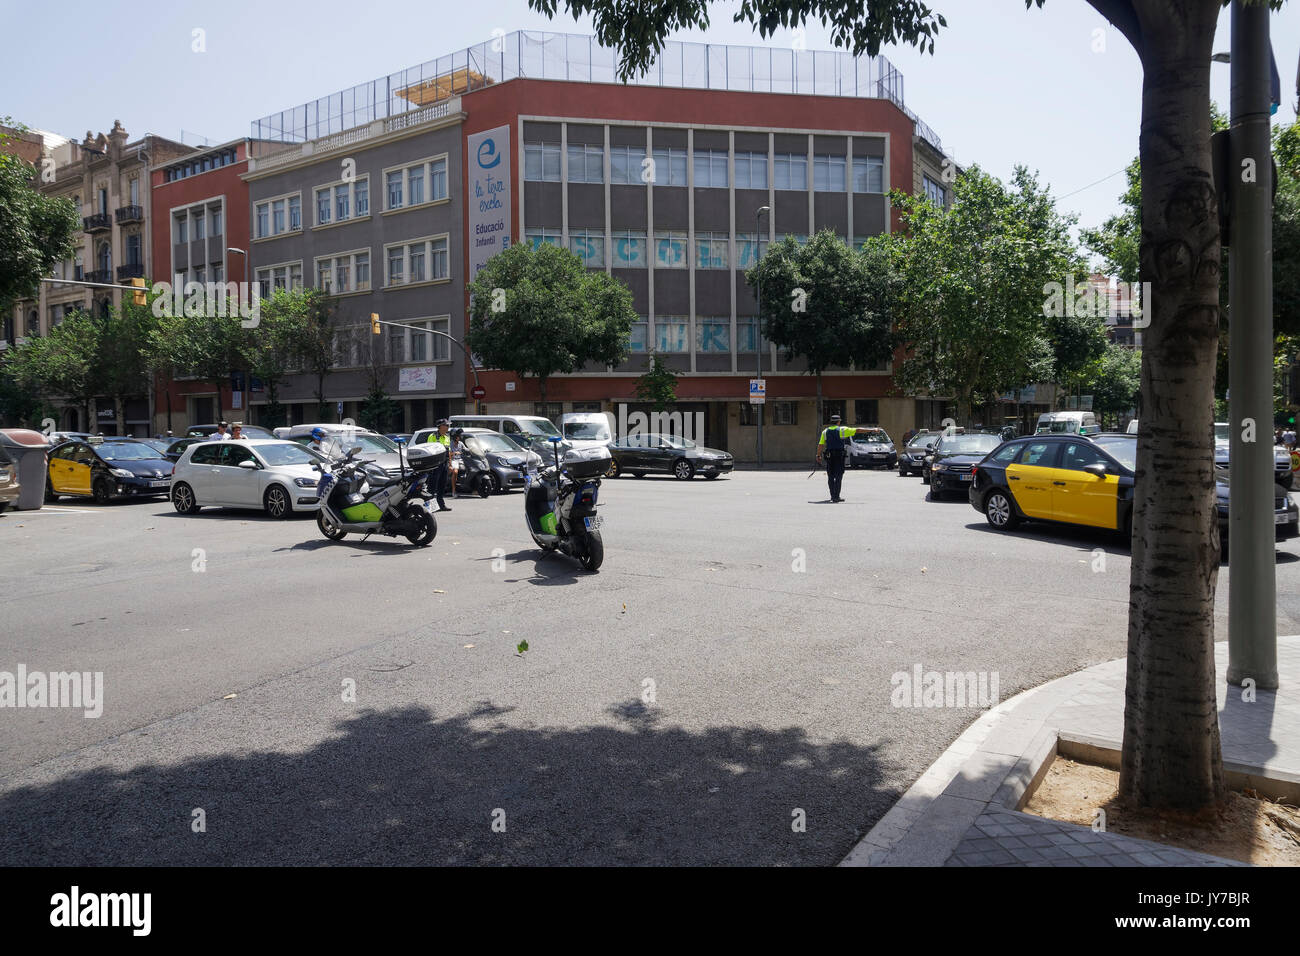 Police men of Guardia Urbana securing road safety on Barcelona city center. - Stock Image